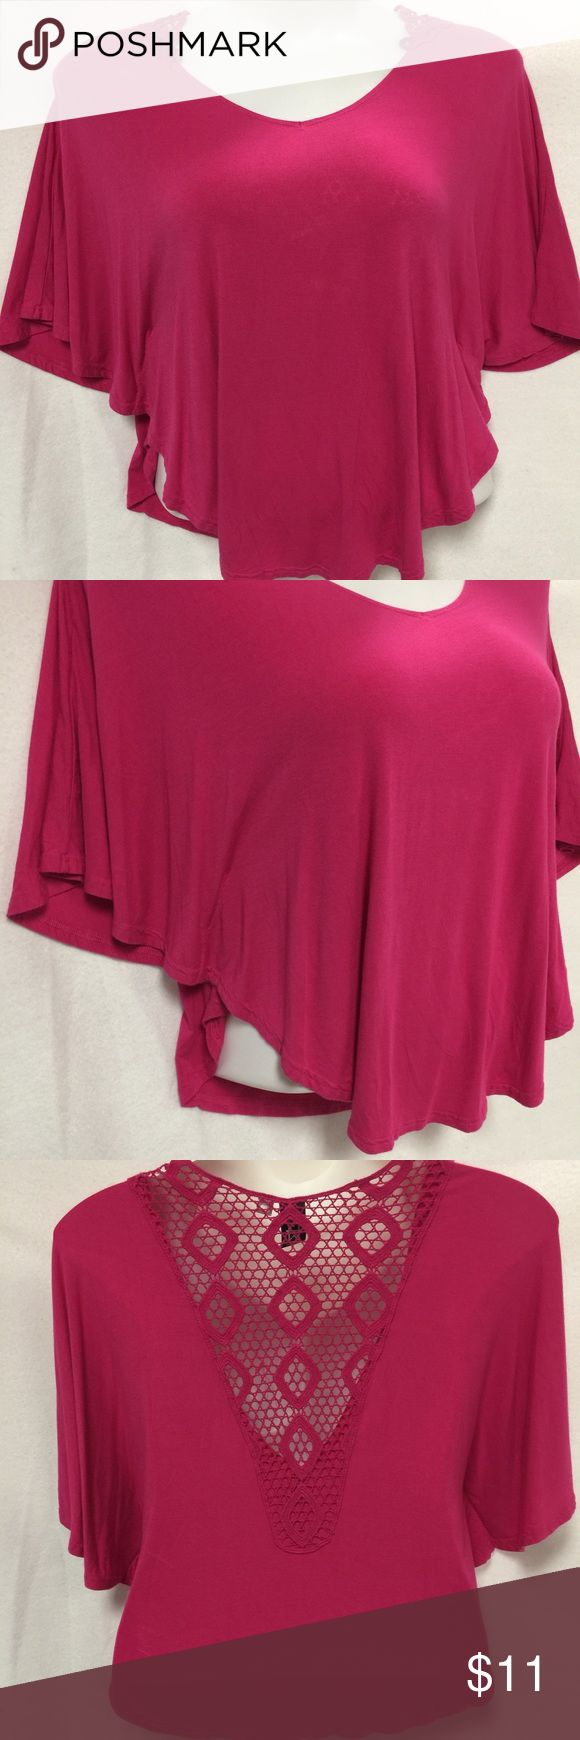 Pink Batwing Top Pink Batwing Top Lace back flattering cut ;) Marc Bouwer Tops